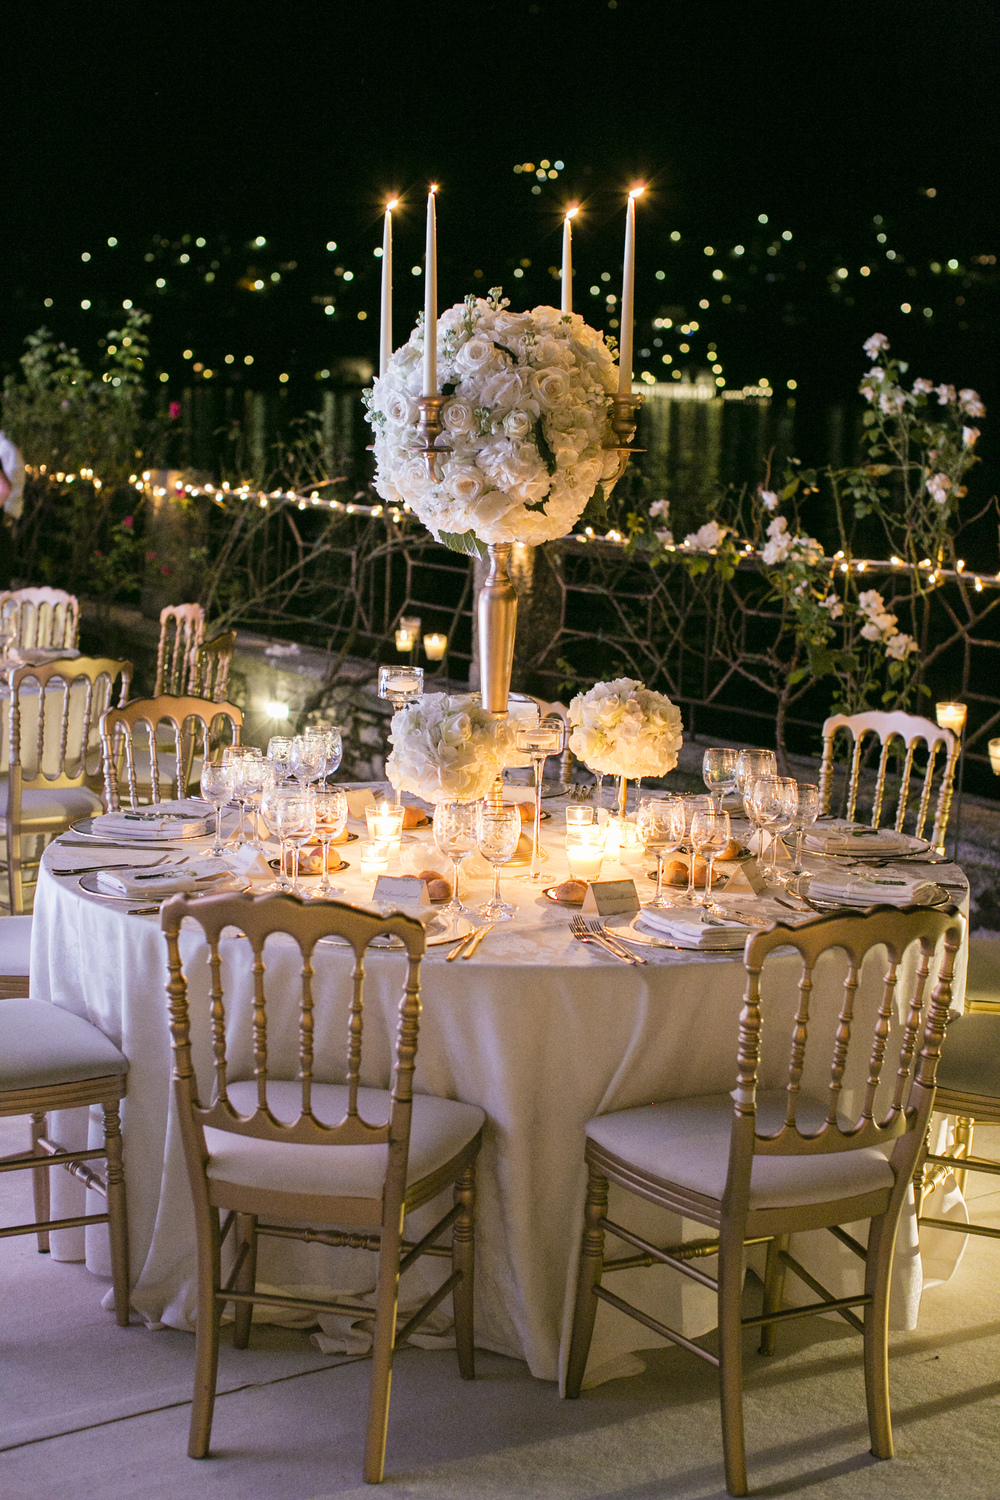 Ceci_New_York_Wedding_Lake_Como_Italy_Luxury_Style_Real_Bride_106.jpg